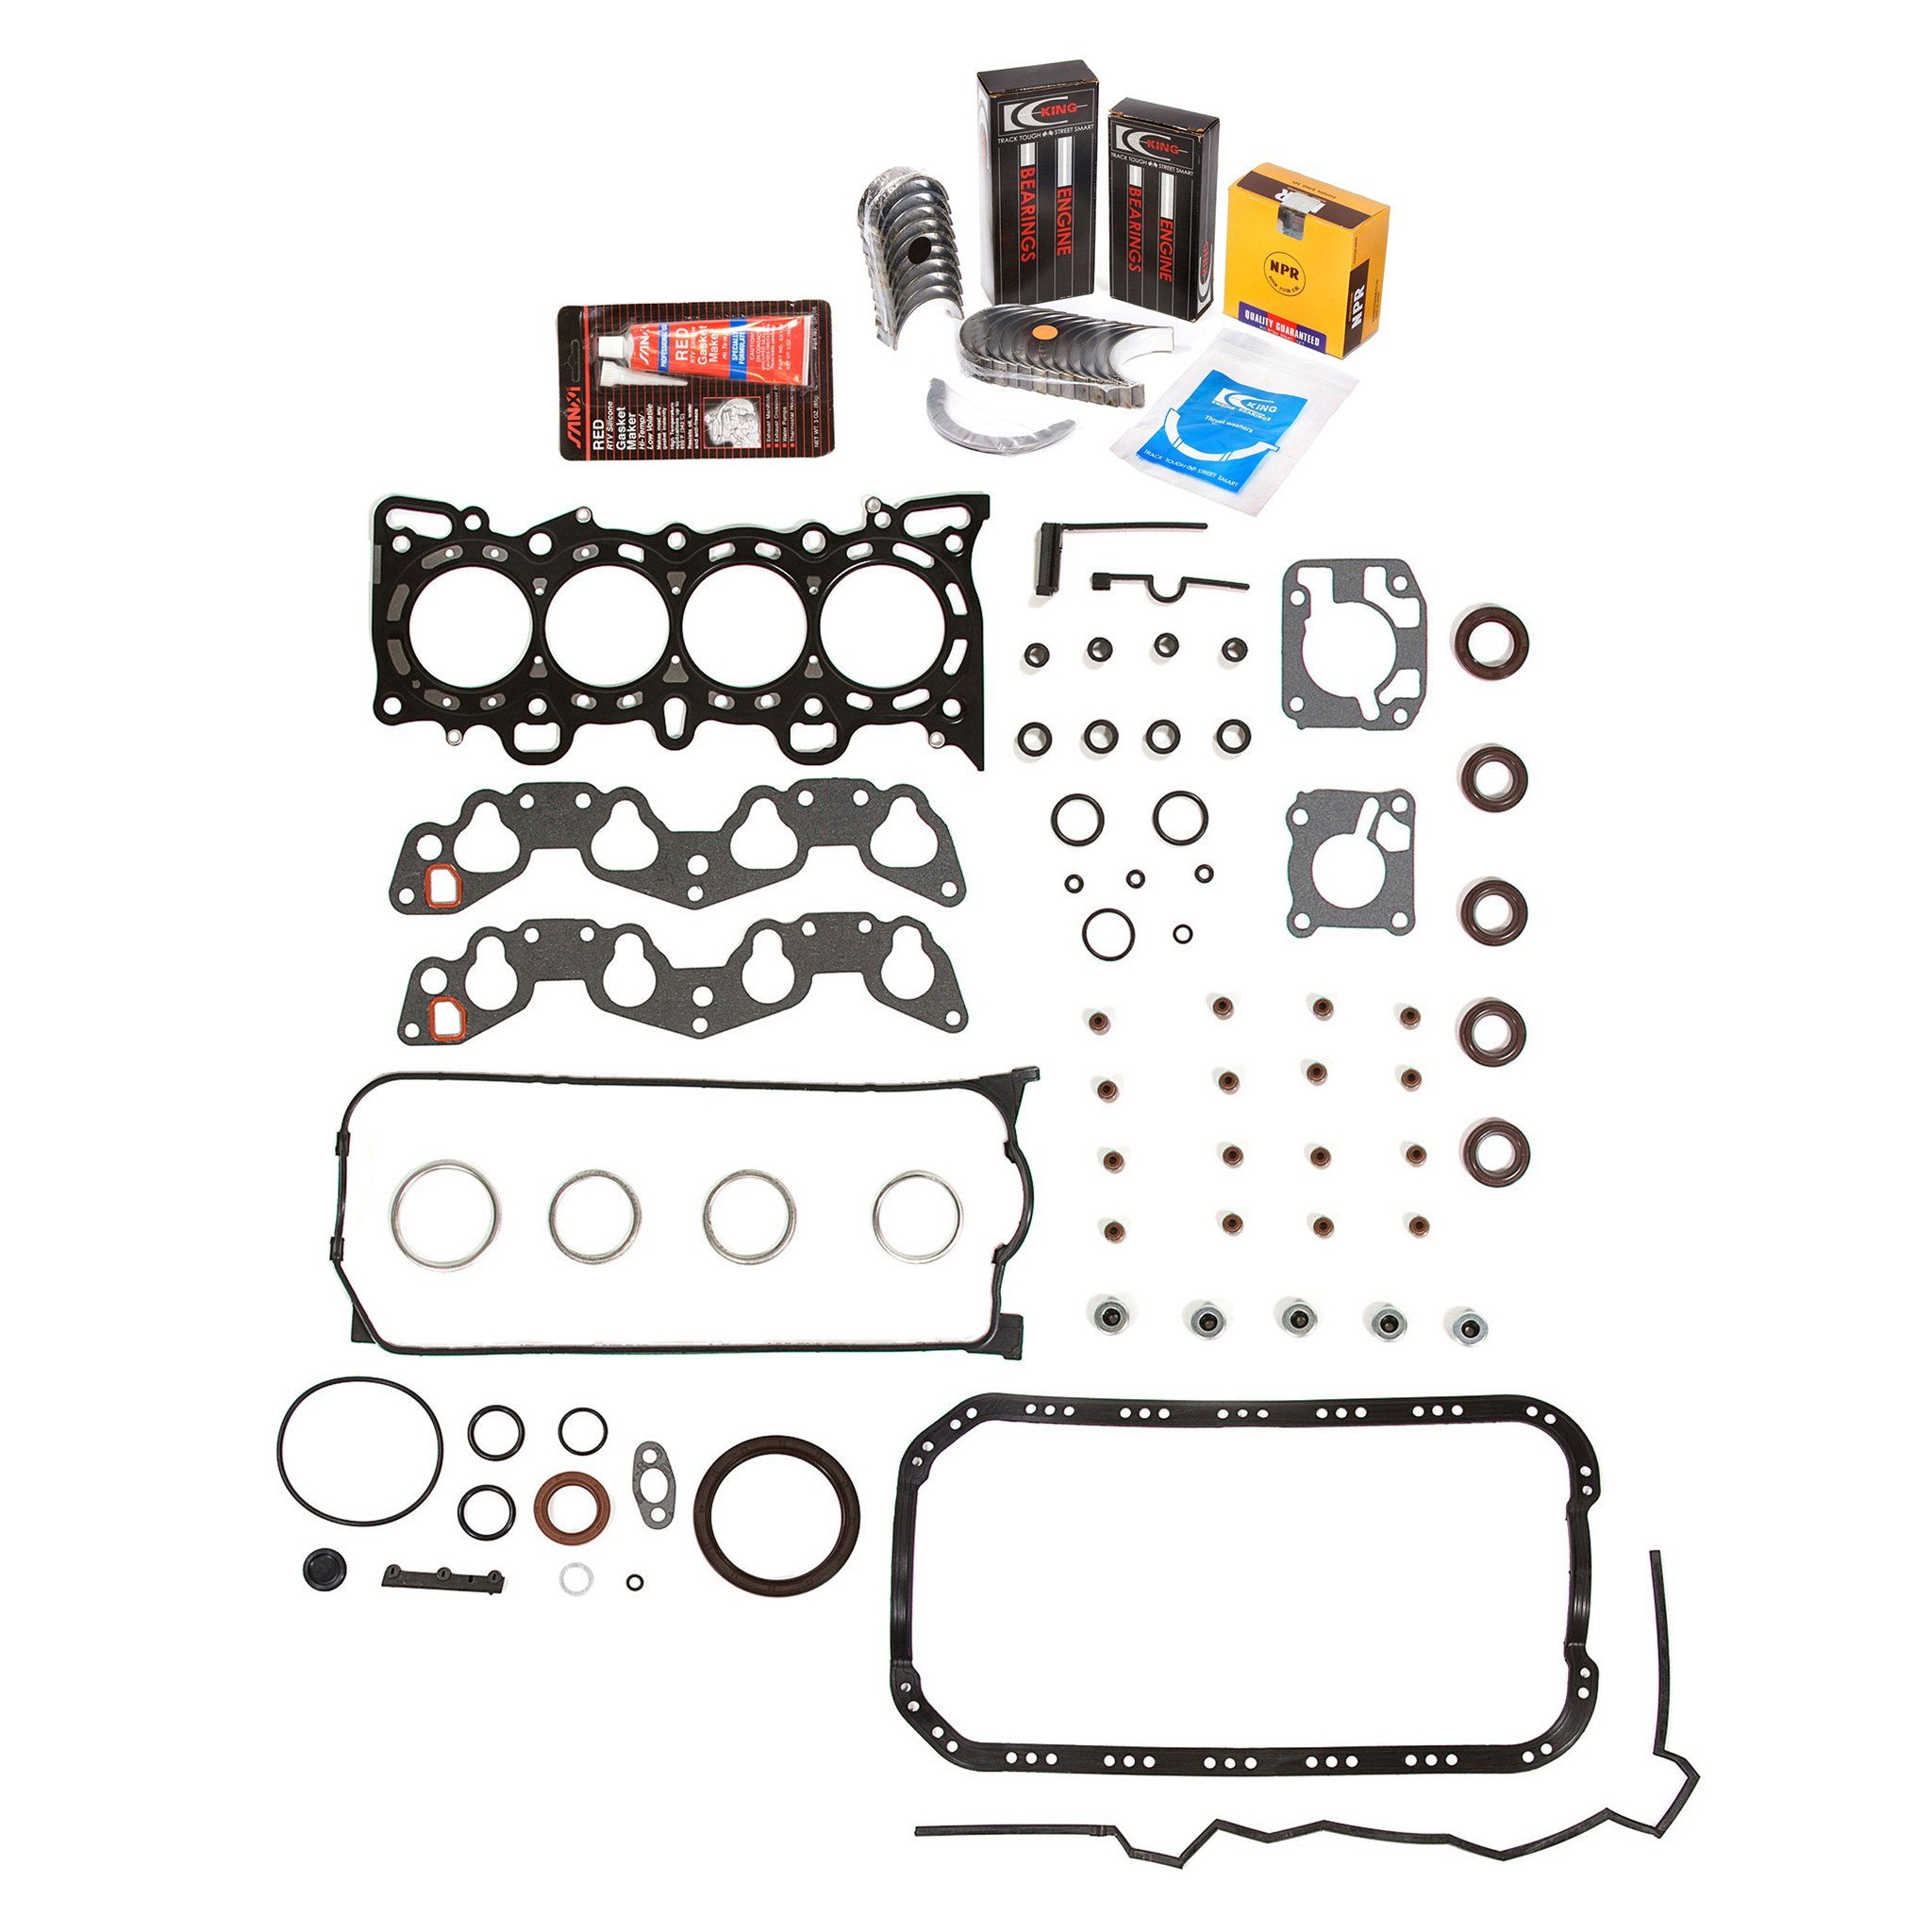 Evergreen Engine Rering Kit FSBRR4028 92-95 Honda Civic Del Sol D16Z6 Full Gasket Set, 0.50mm / 0.020'' Oversize Main Rod Bearings, 0.50mm / 0.020'' Oversize Piston Rings by Evergreen Parts And Components